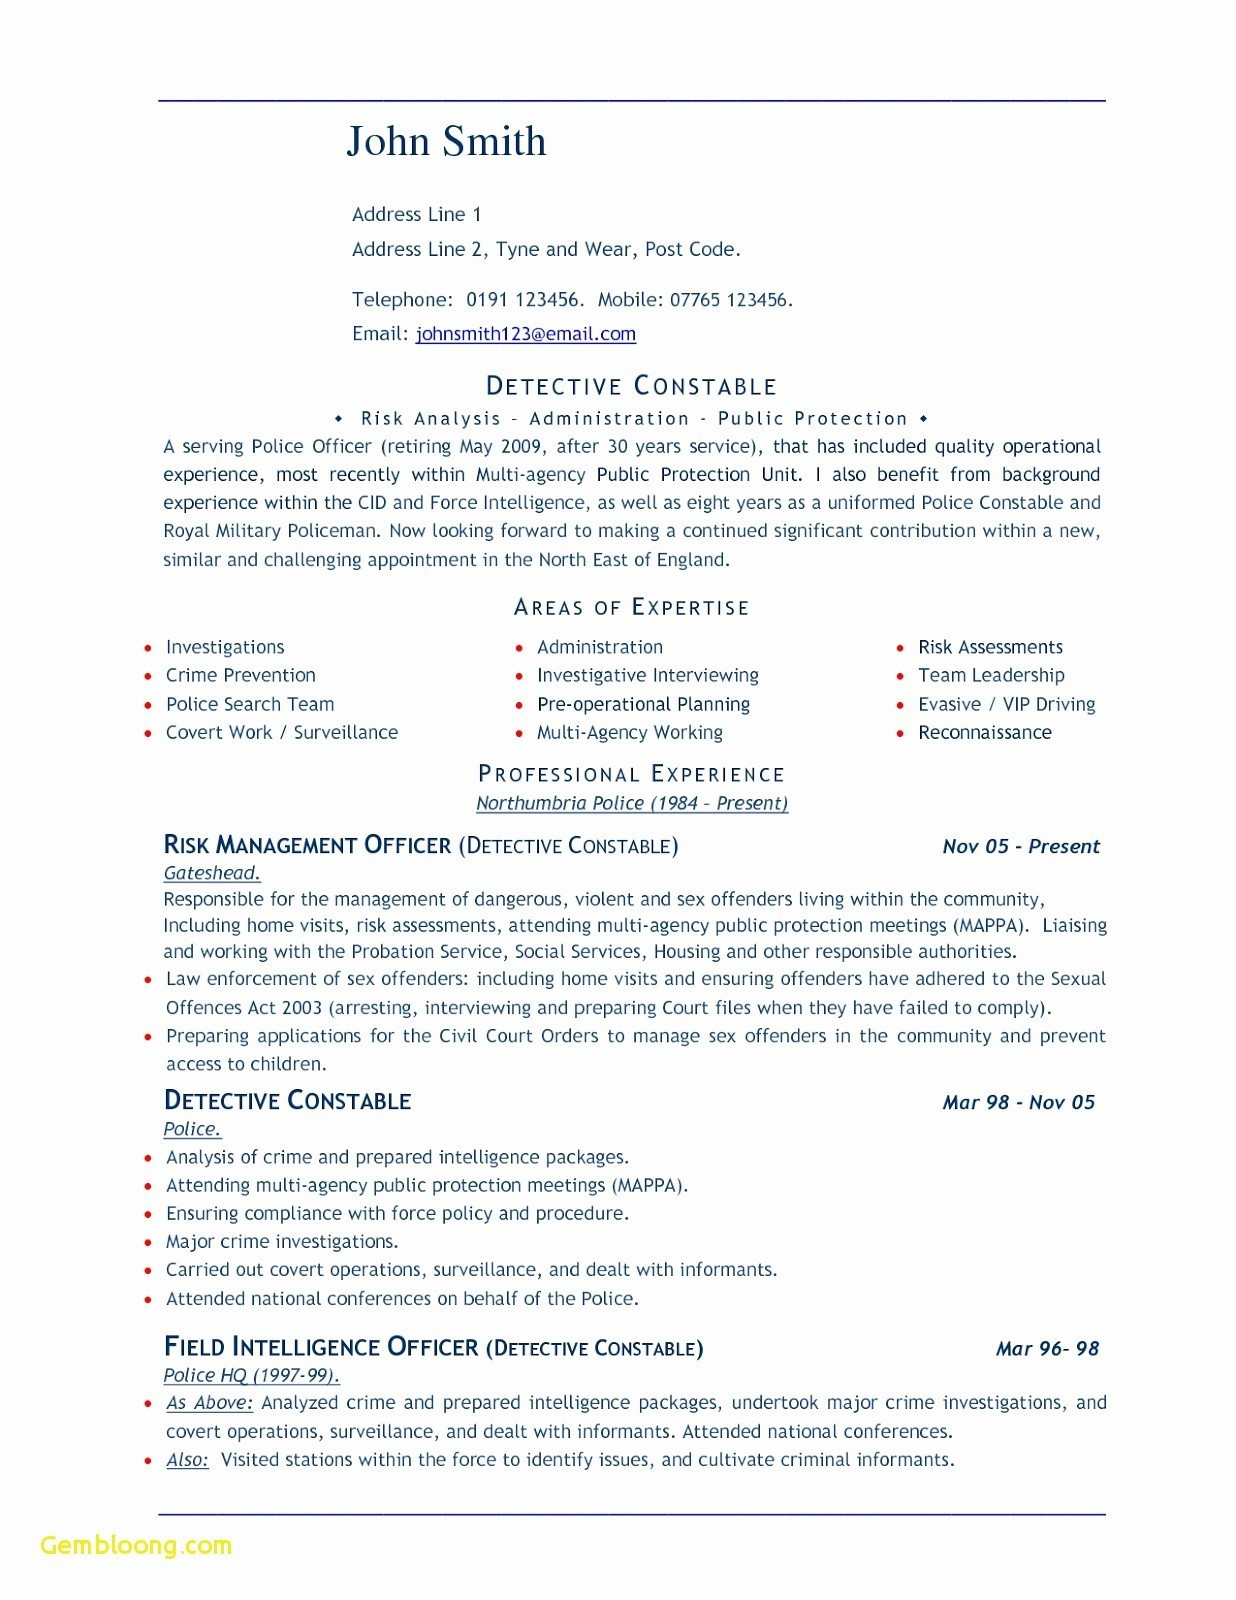 Microsoft Word Templates Resume - Resume Microsoft Word New Best Federal Government Resume Template